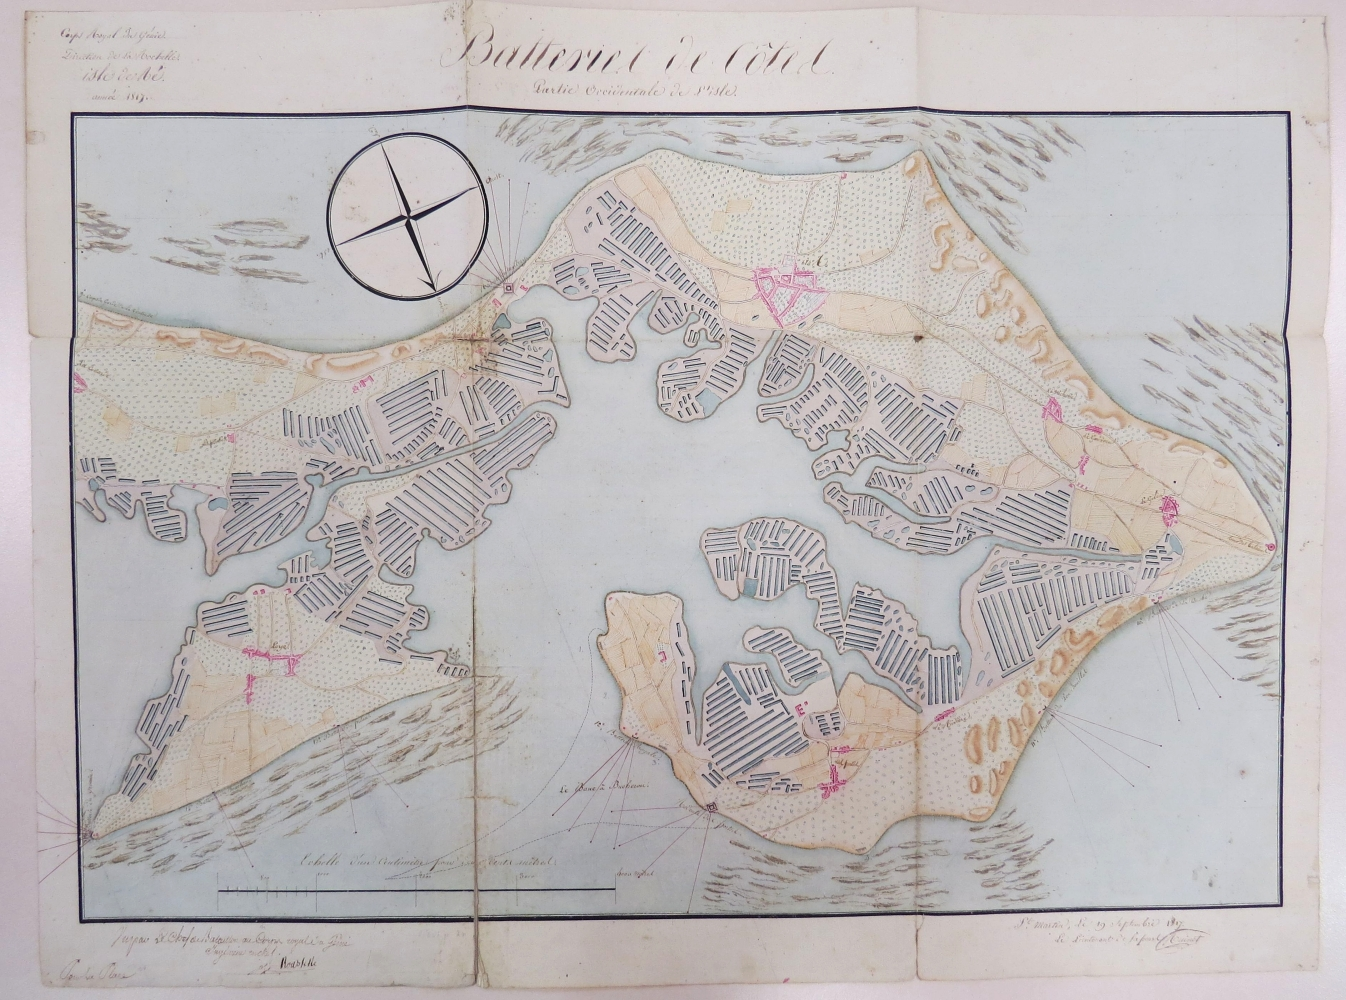 Situation des batteries de la partie occidentale de l'île de Ré, 1817. Archives départementales de la Charente-Maritime, 12 J 121.